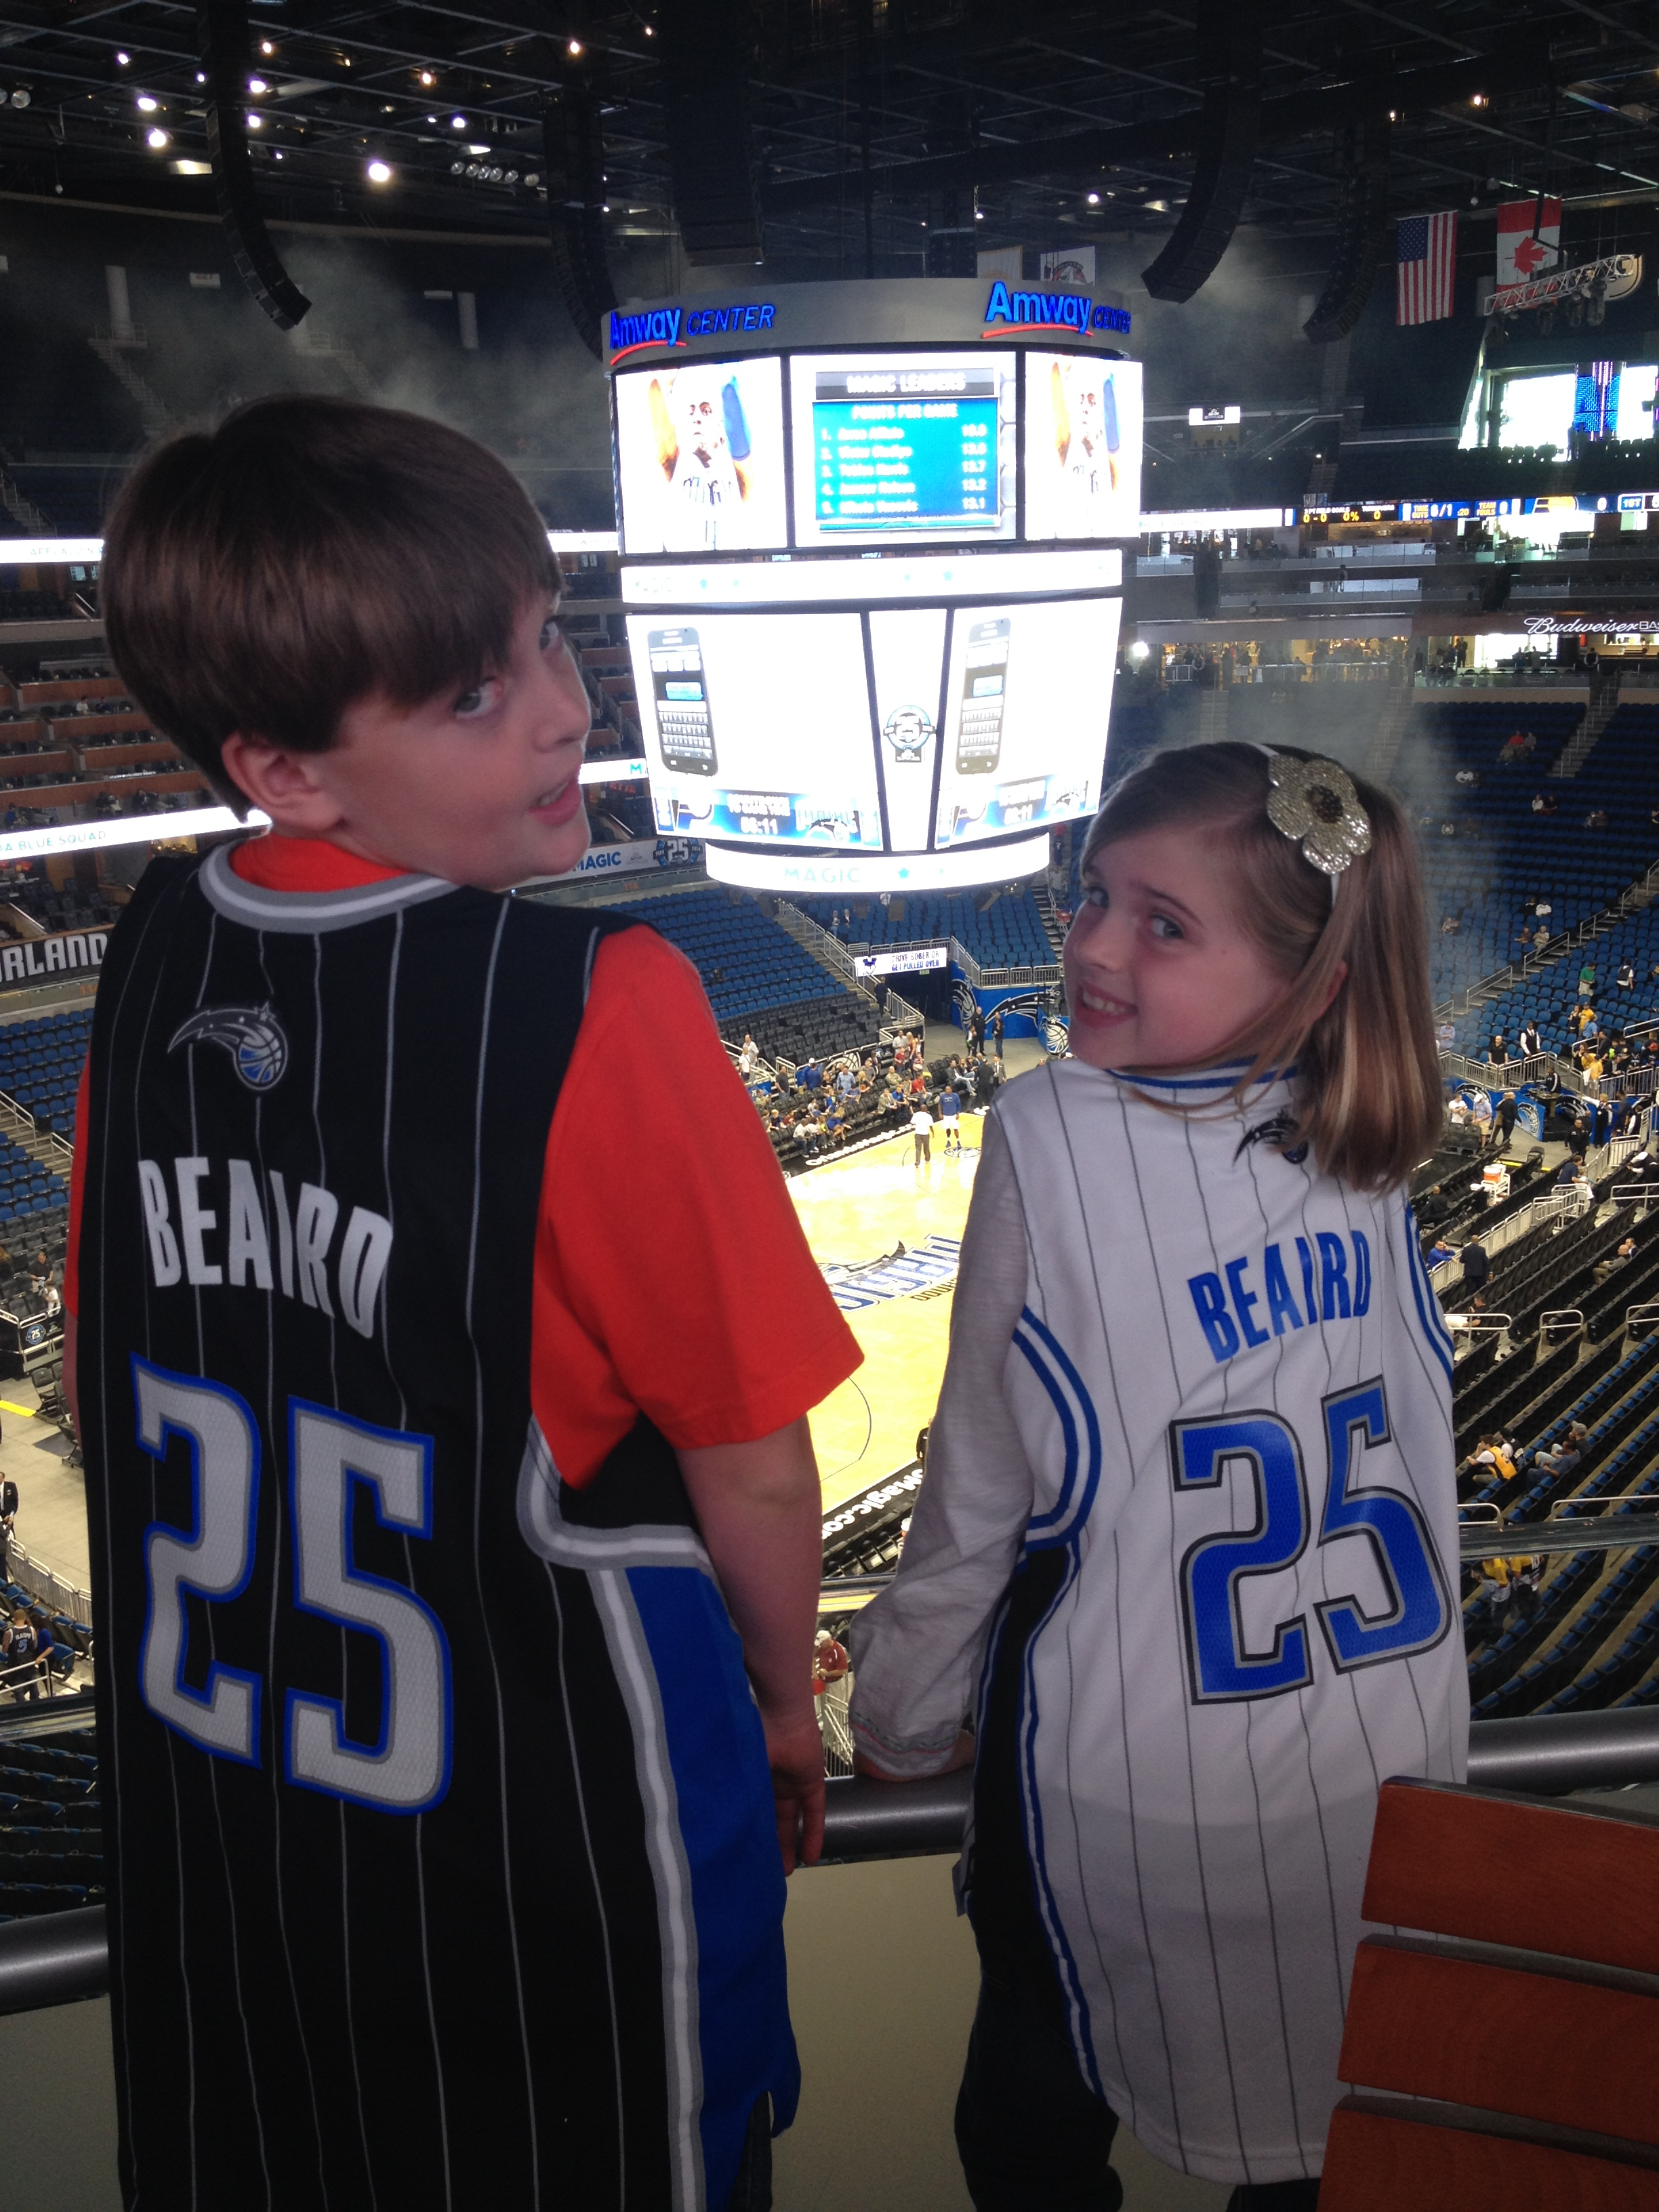 Orlando Magic Game